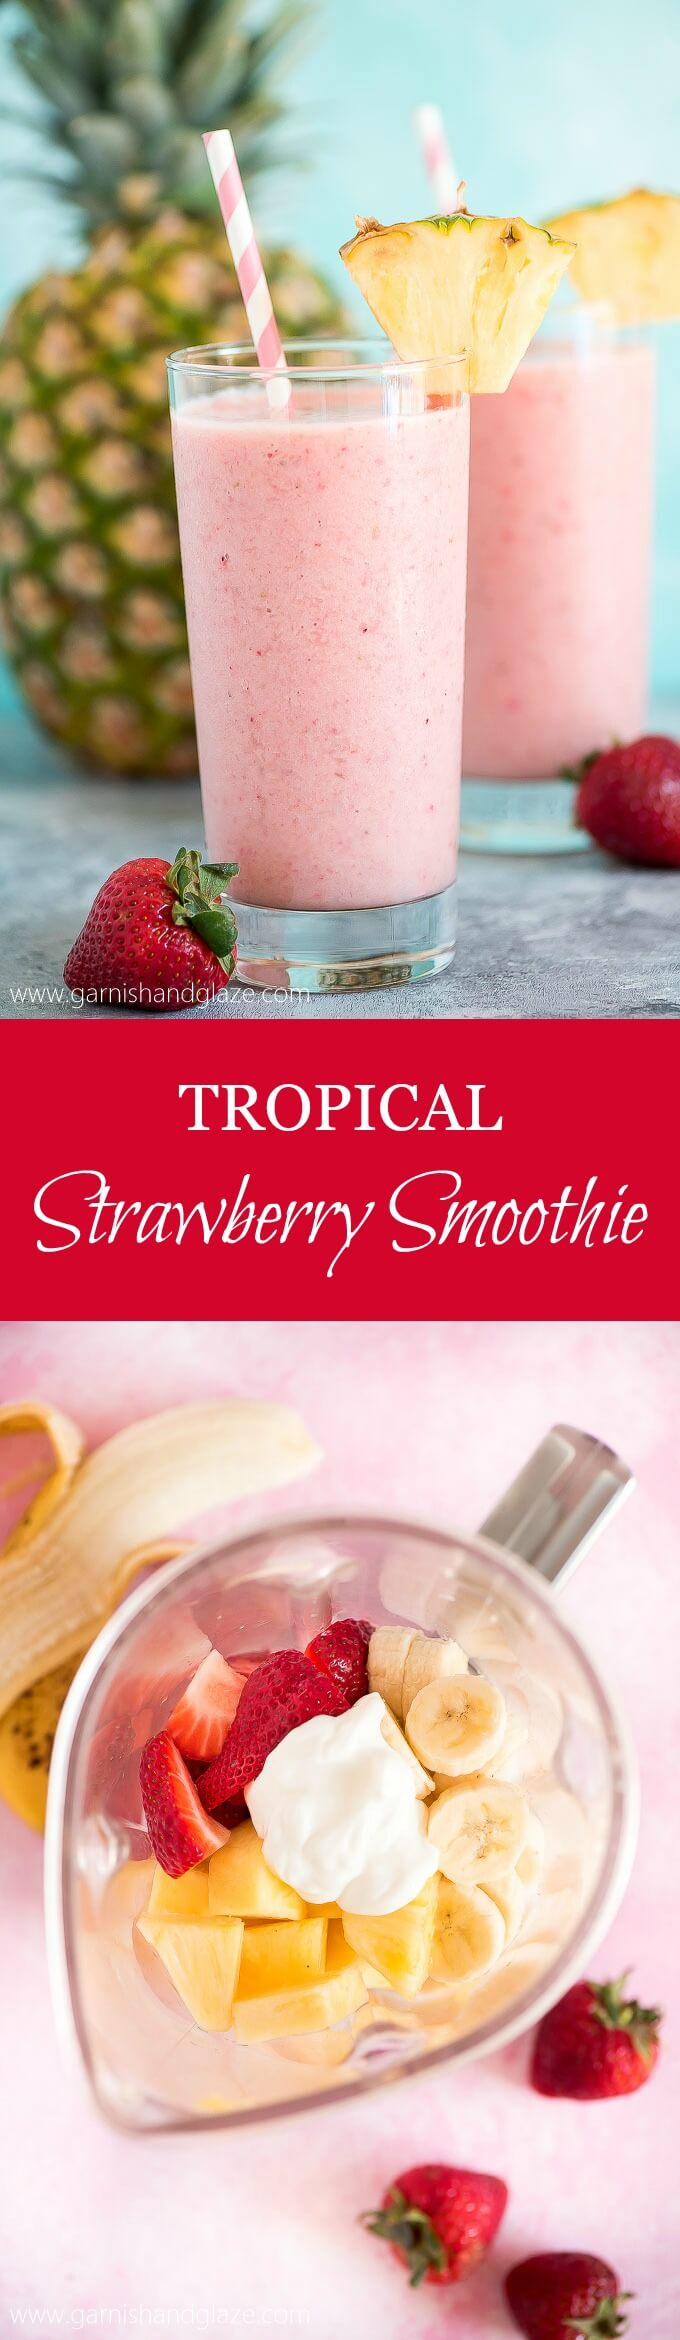 Beat the summer heat with a yummy, refreshing, and healthy Tropical Strawberry Smoothie. No need to go to Hawaii when you've got this in hand.